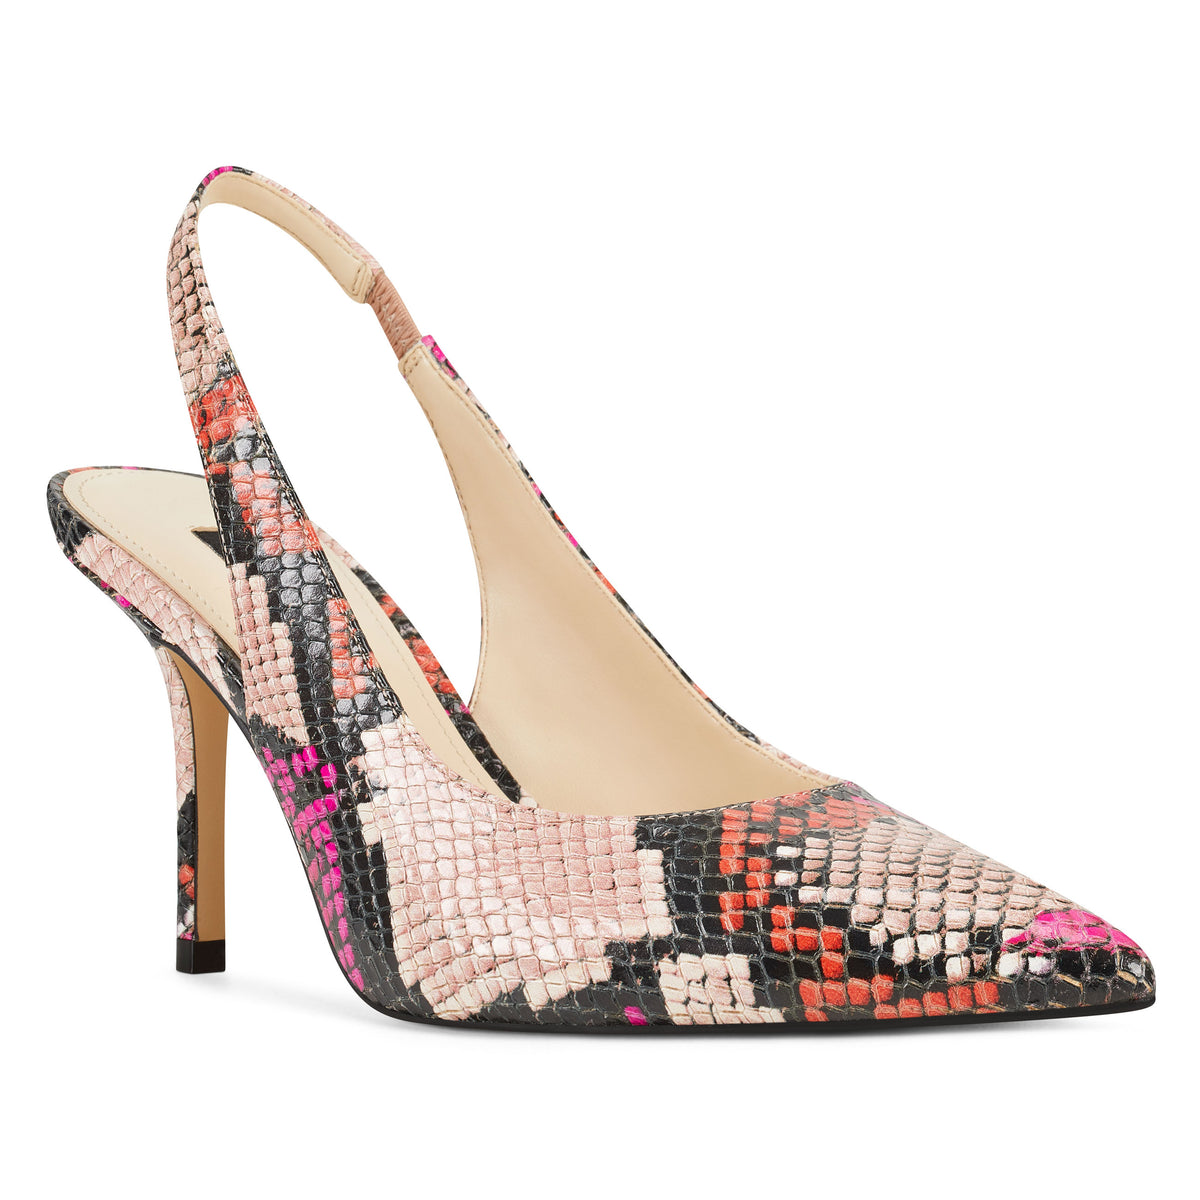 holly-slingback-pumps-in-pink-snake-print